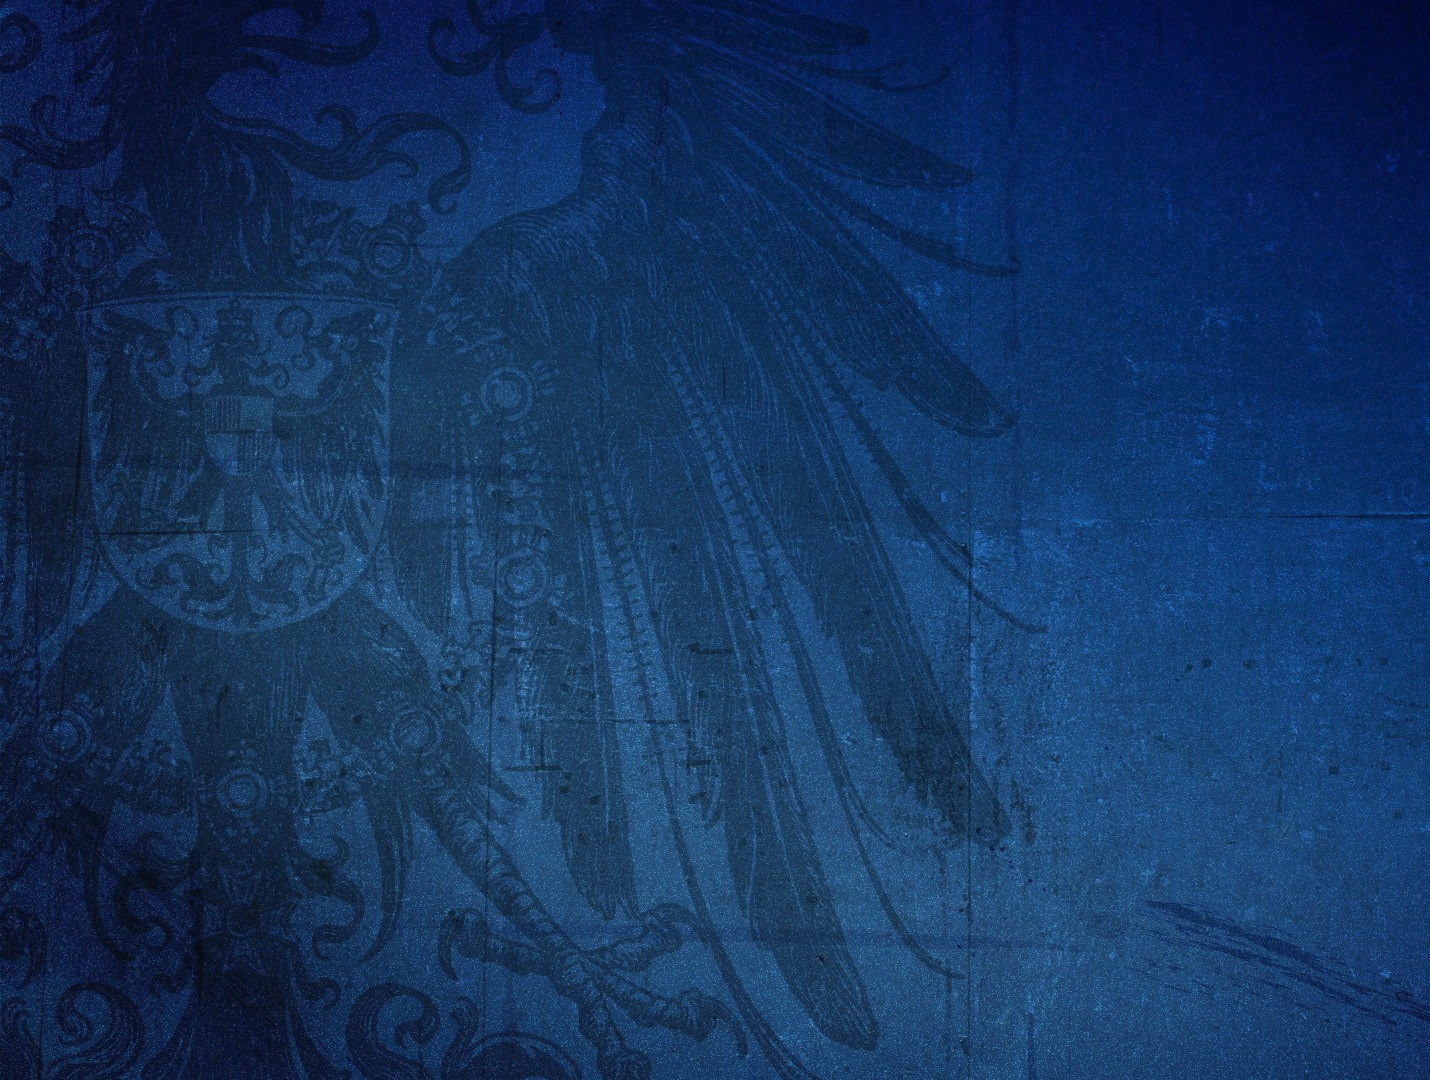 26 blue pattern backgrounds wallpapers freecreatives for Dark pattern background